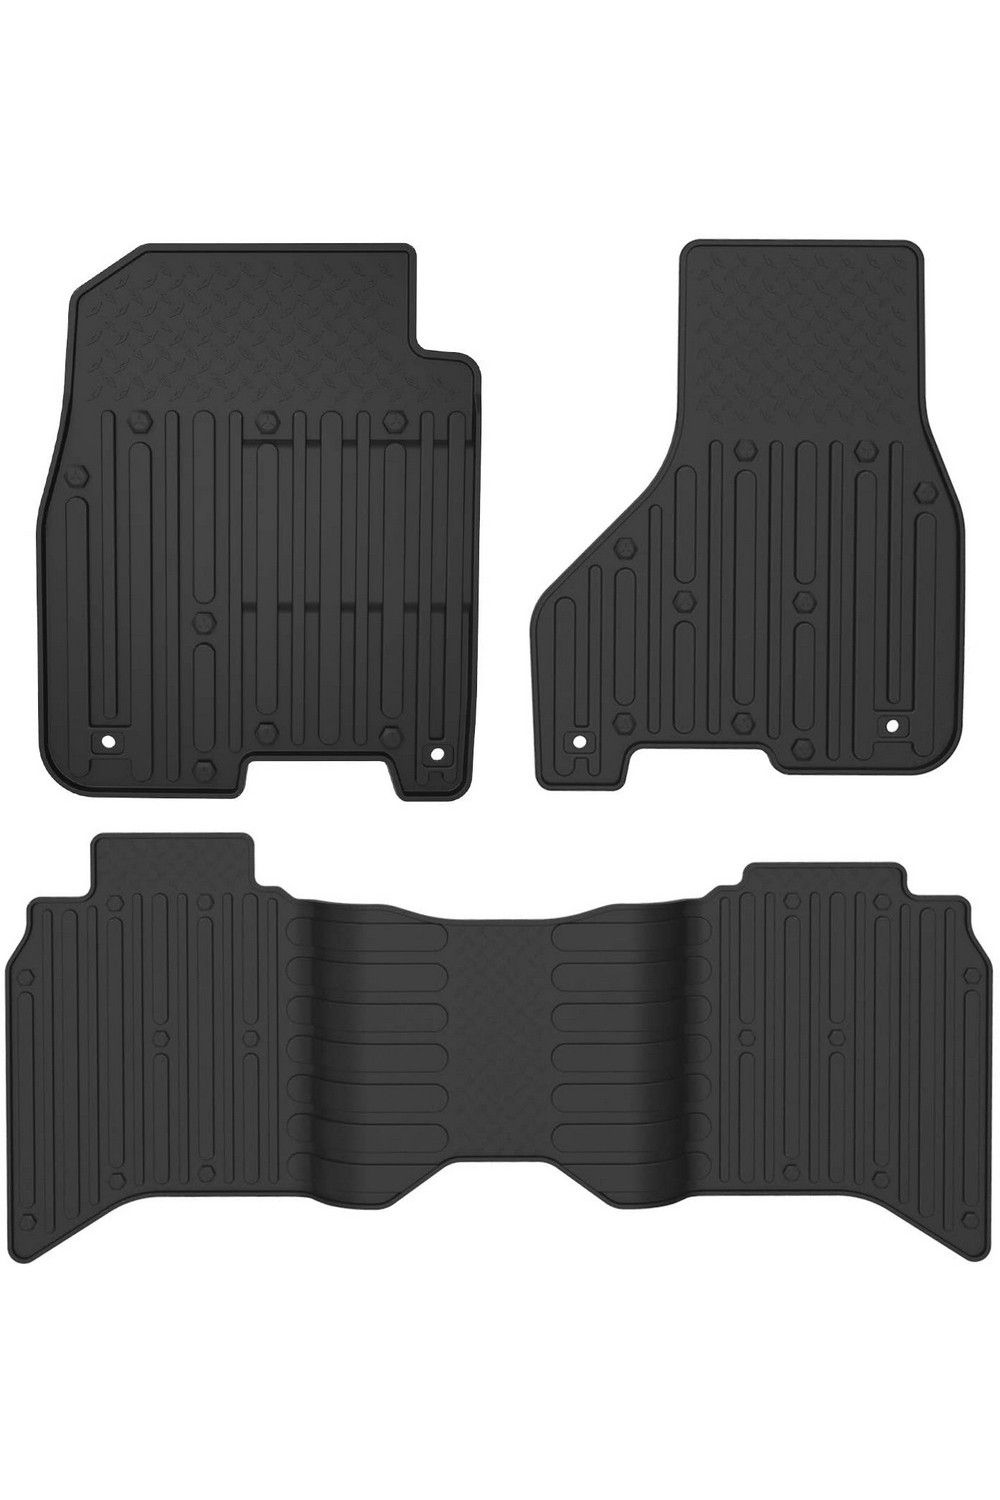 Oedro Floor Mats Compatible For Crew Cab 2012 2018 Dodge Ram 1500 2500 3500 2019 2020 Dodge Ram In 2021 Dodge Ram 1500 Crew Cab Dodge Ram